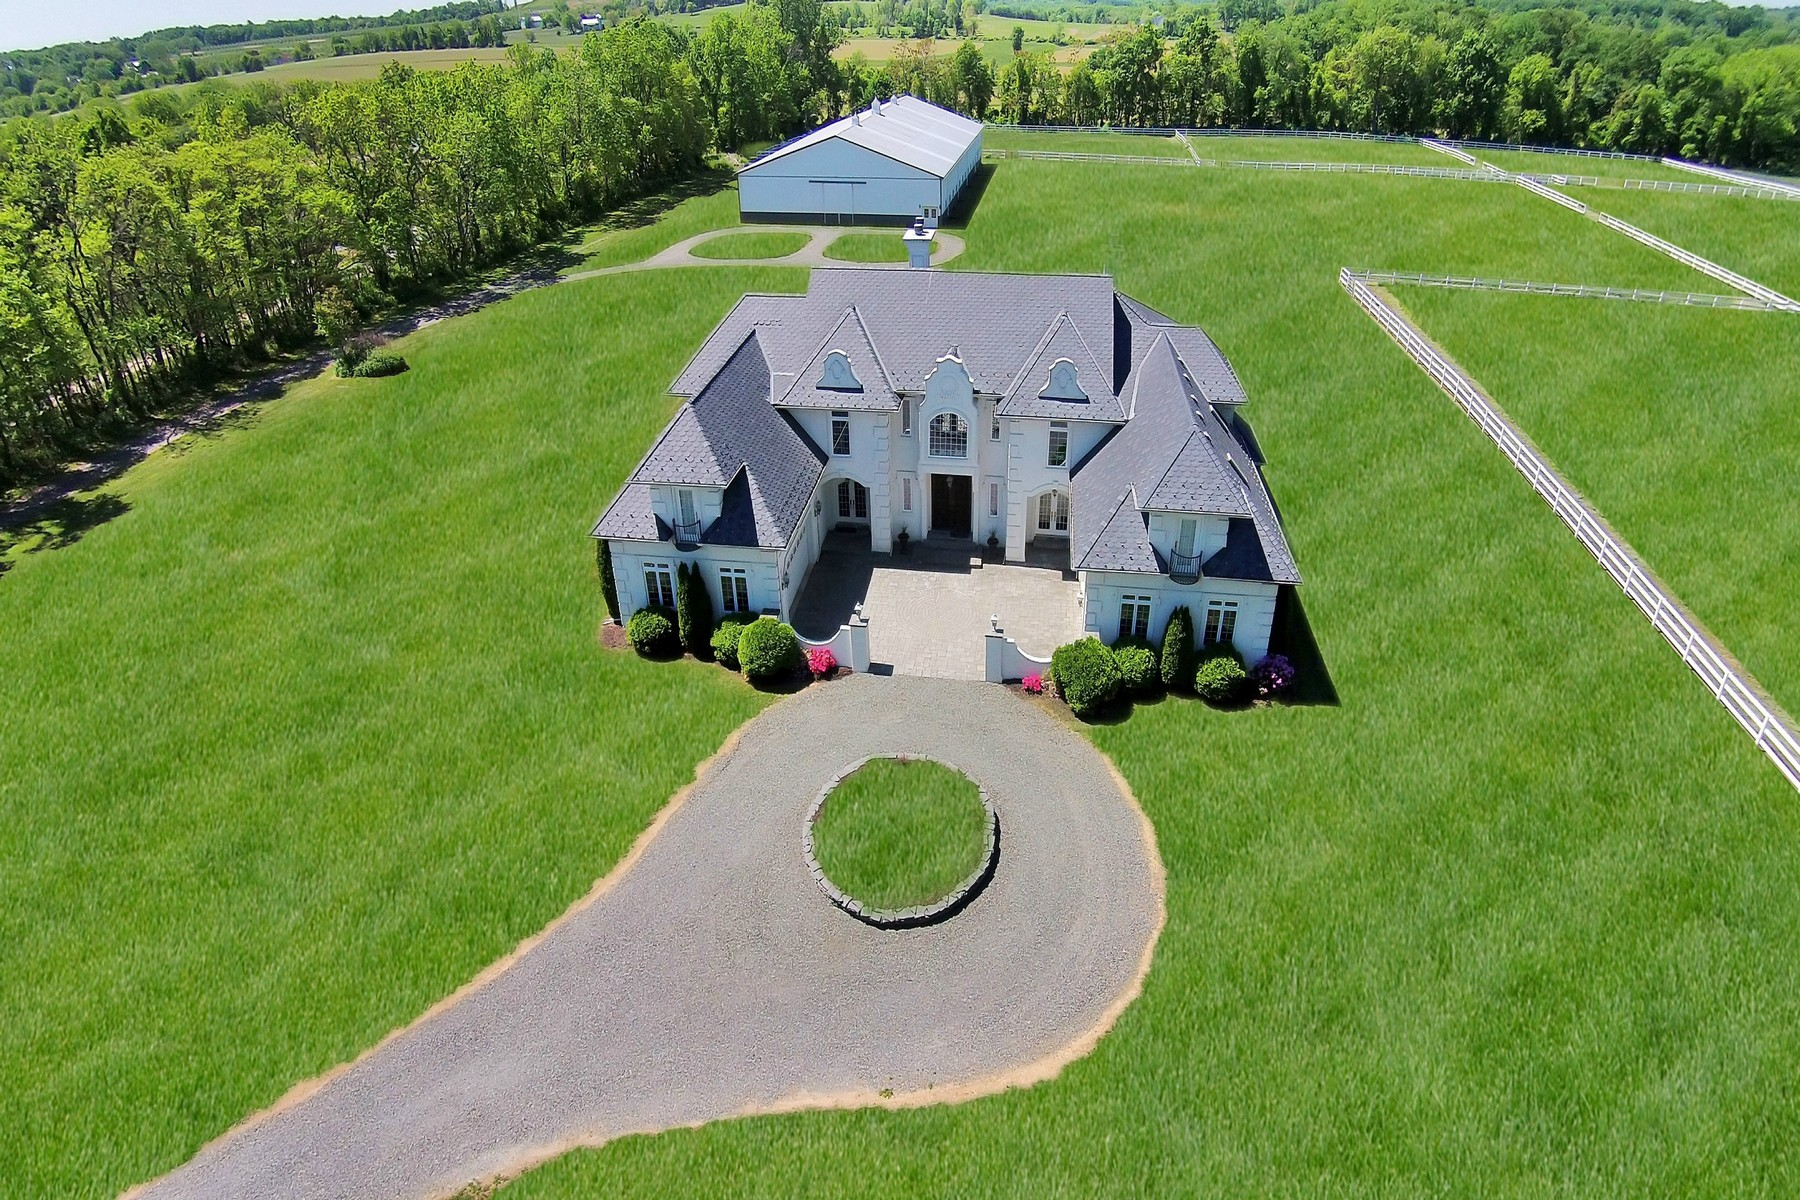 独户住宅 为 销售 在 Luxurious French Manor with Equine Facility 3-5 Hill and Dale Califon, 07830 美国